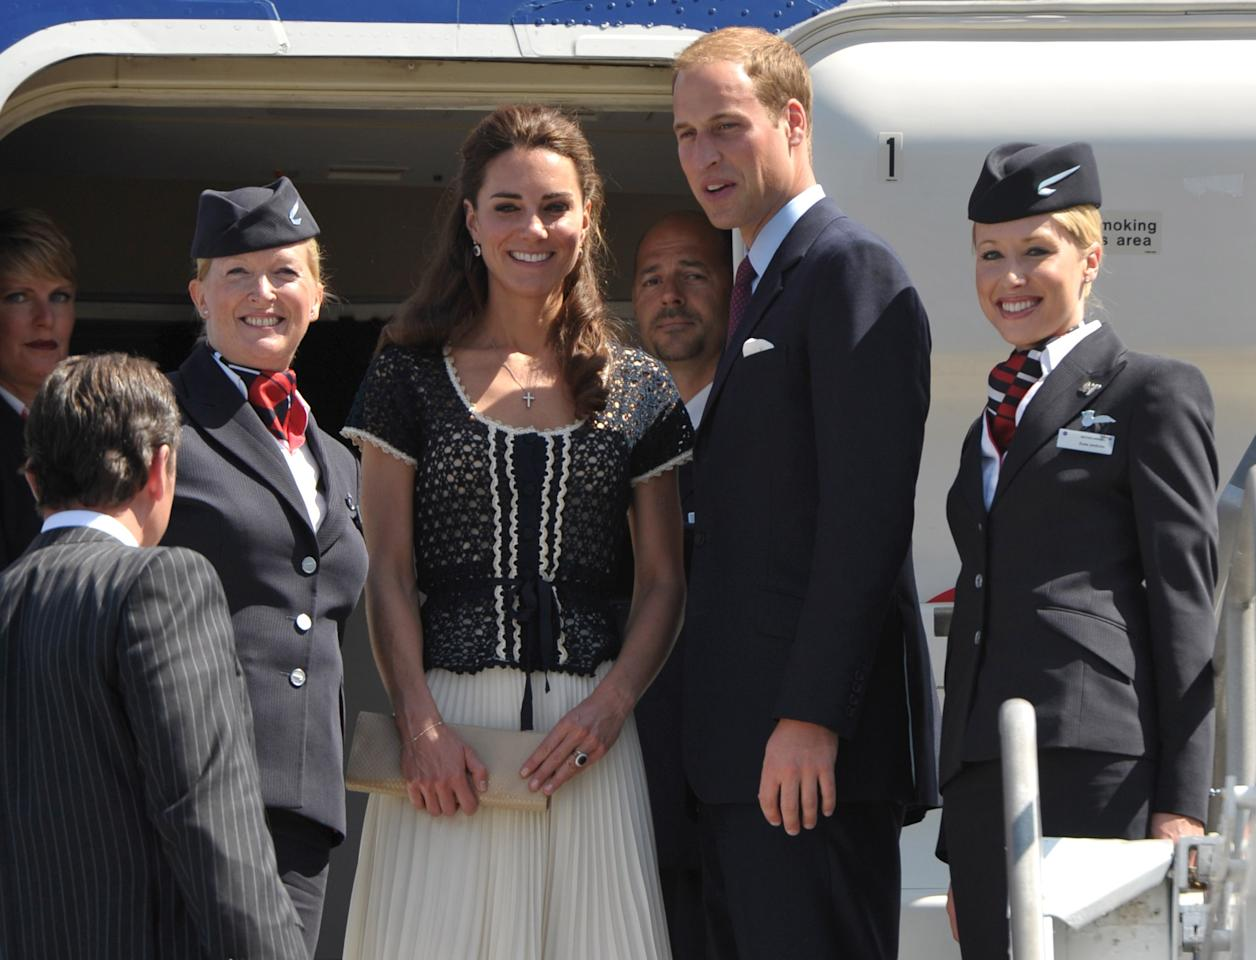 Prince William and Kate, the Duke and Duchess of Cambridge, prepare for their departure at Los Angeles International Airport on Sunday, July 10, 2011, in Los Angeles. Following a nonstop weekend that included a few chukkas of polo, time with Hollywood's own version of royalty and several events that raised millions for charity, Prince William and his wife, Kate, the Duke and Duchess of Cambridge headed back to the U.K. on Sunday. (AP Photo/John Shearer, Pool)